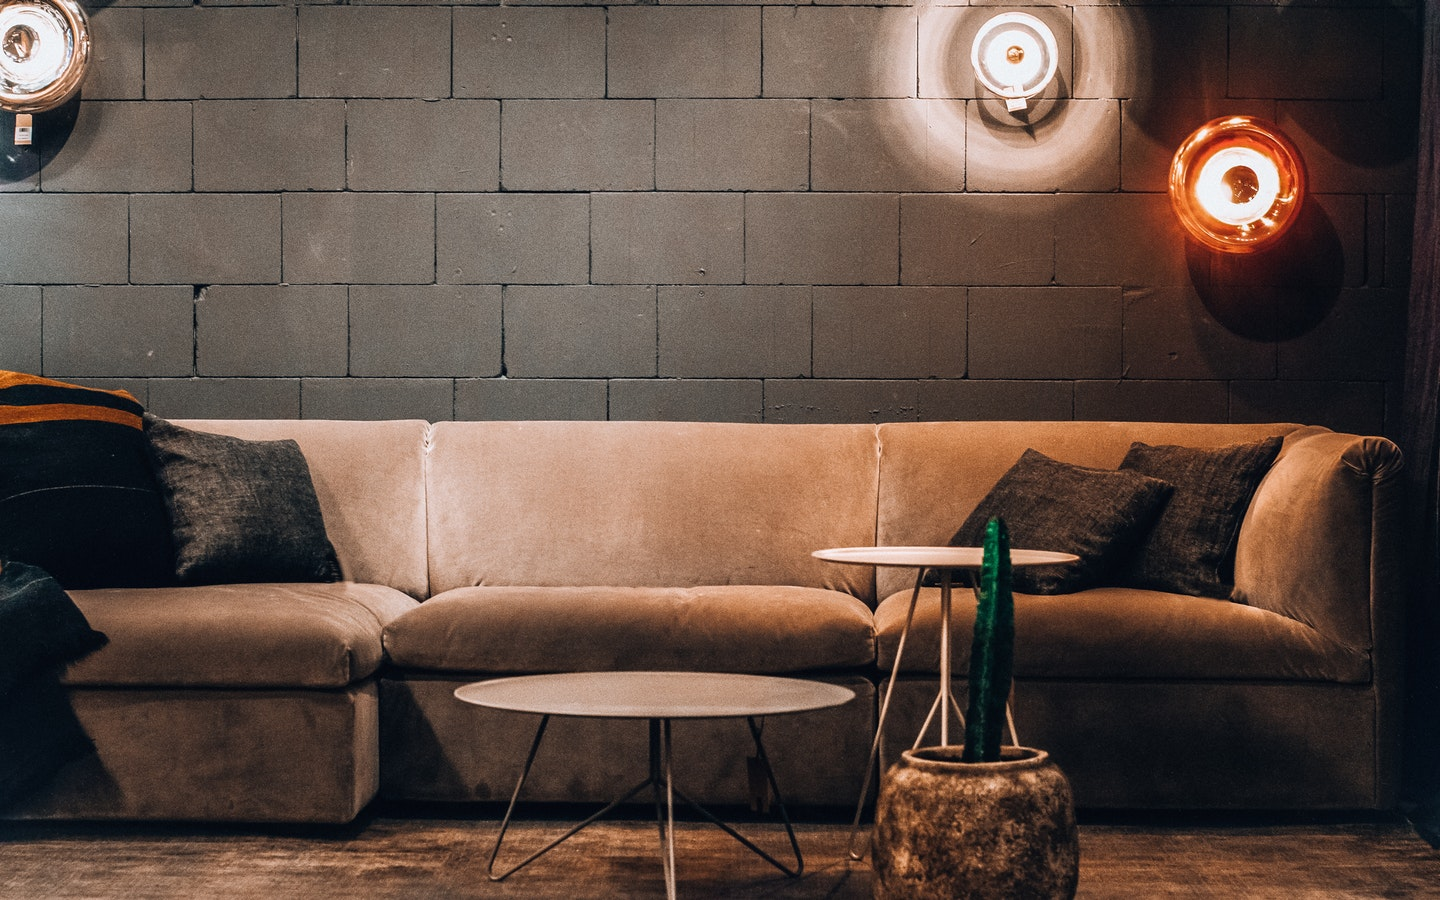 Design better without going overboard by using the rule of 3 in interior design